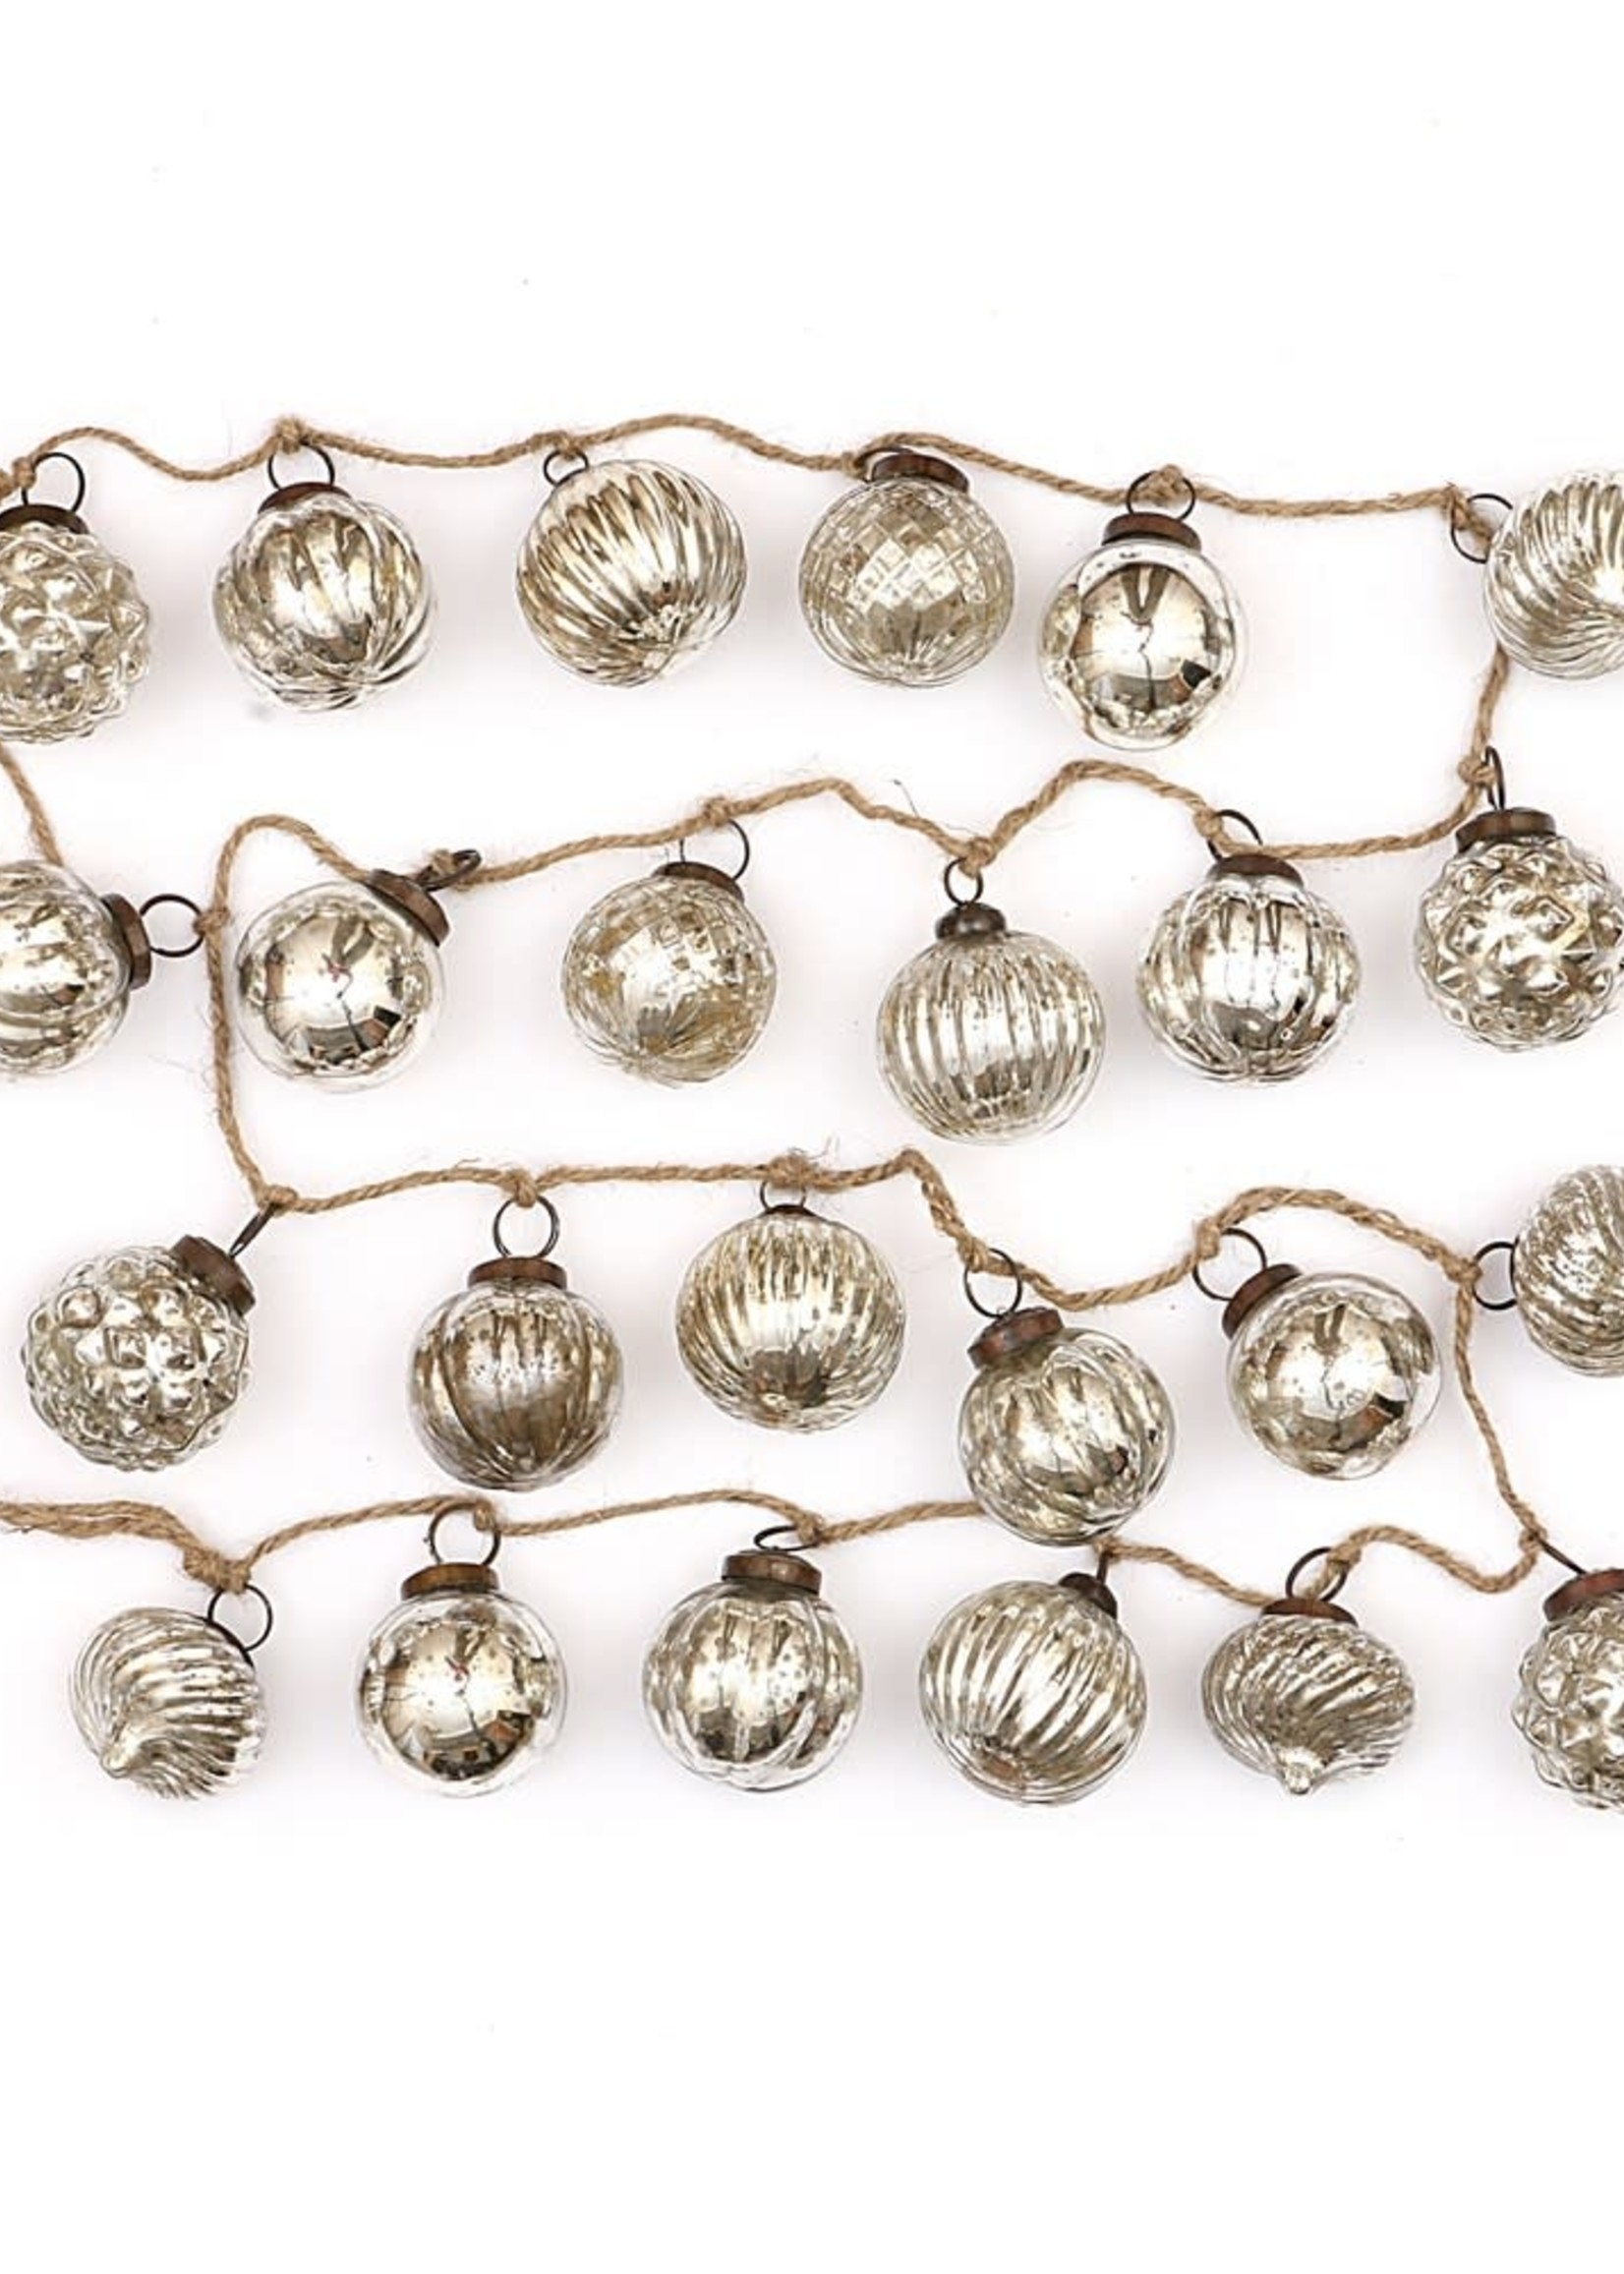 Embossed Mercury Glass Ornament Garland, Antique Silver Finish